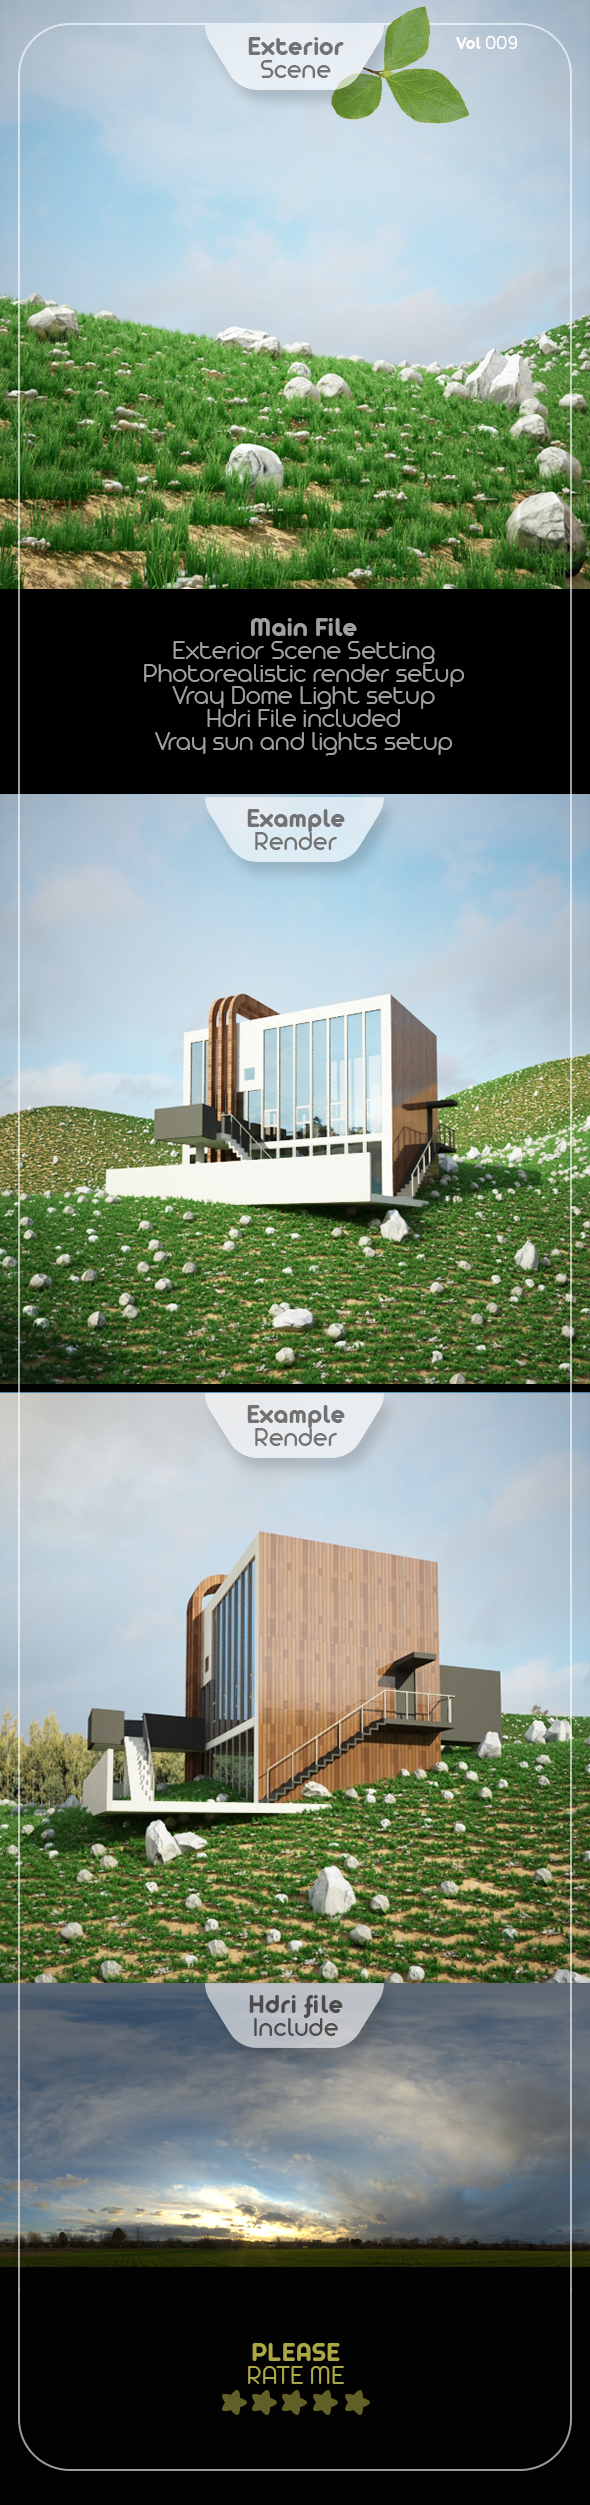 Exterior Render Scene Set 009 - 3DOcean Item for Sale